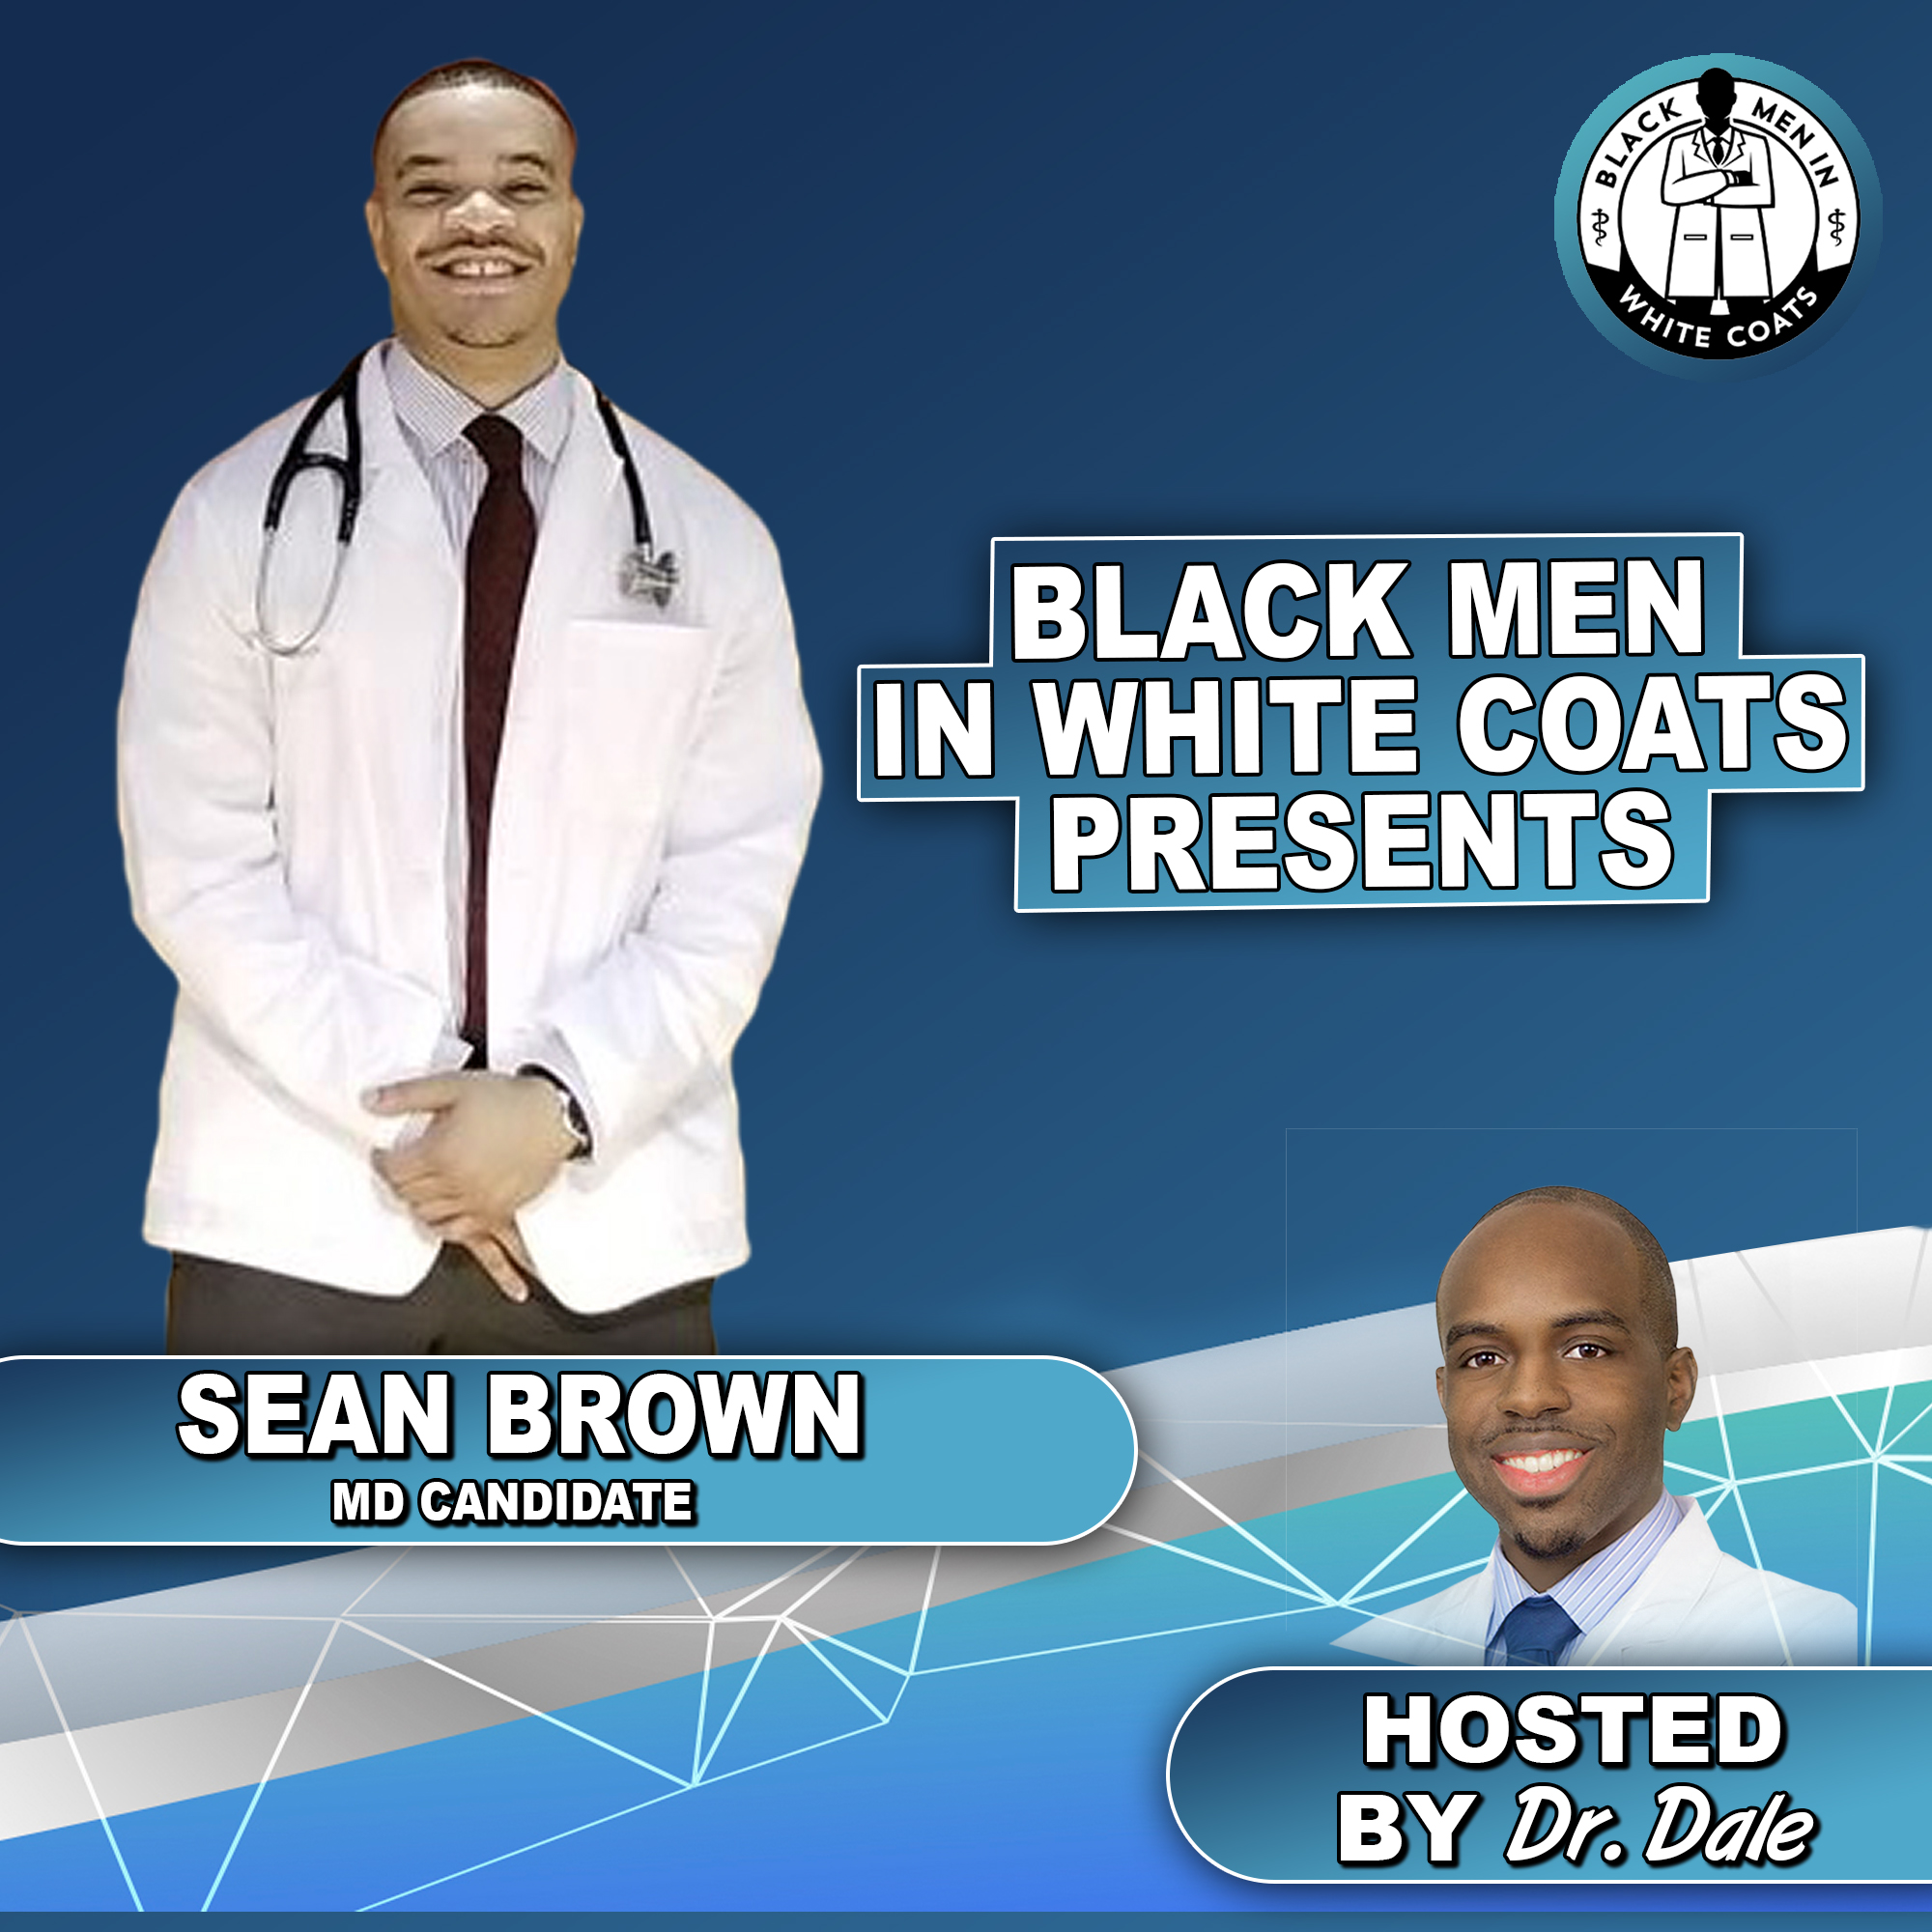 Sean Brown - I'm The Only Black Man In My Med School Class